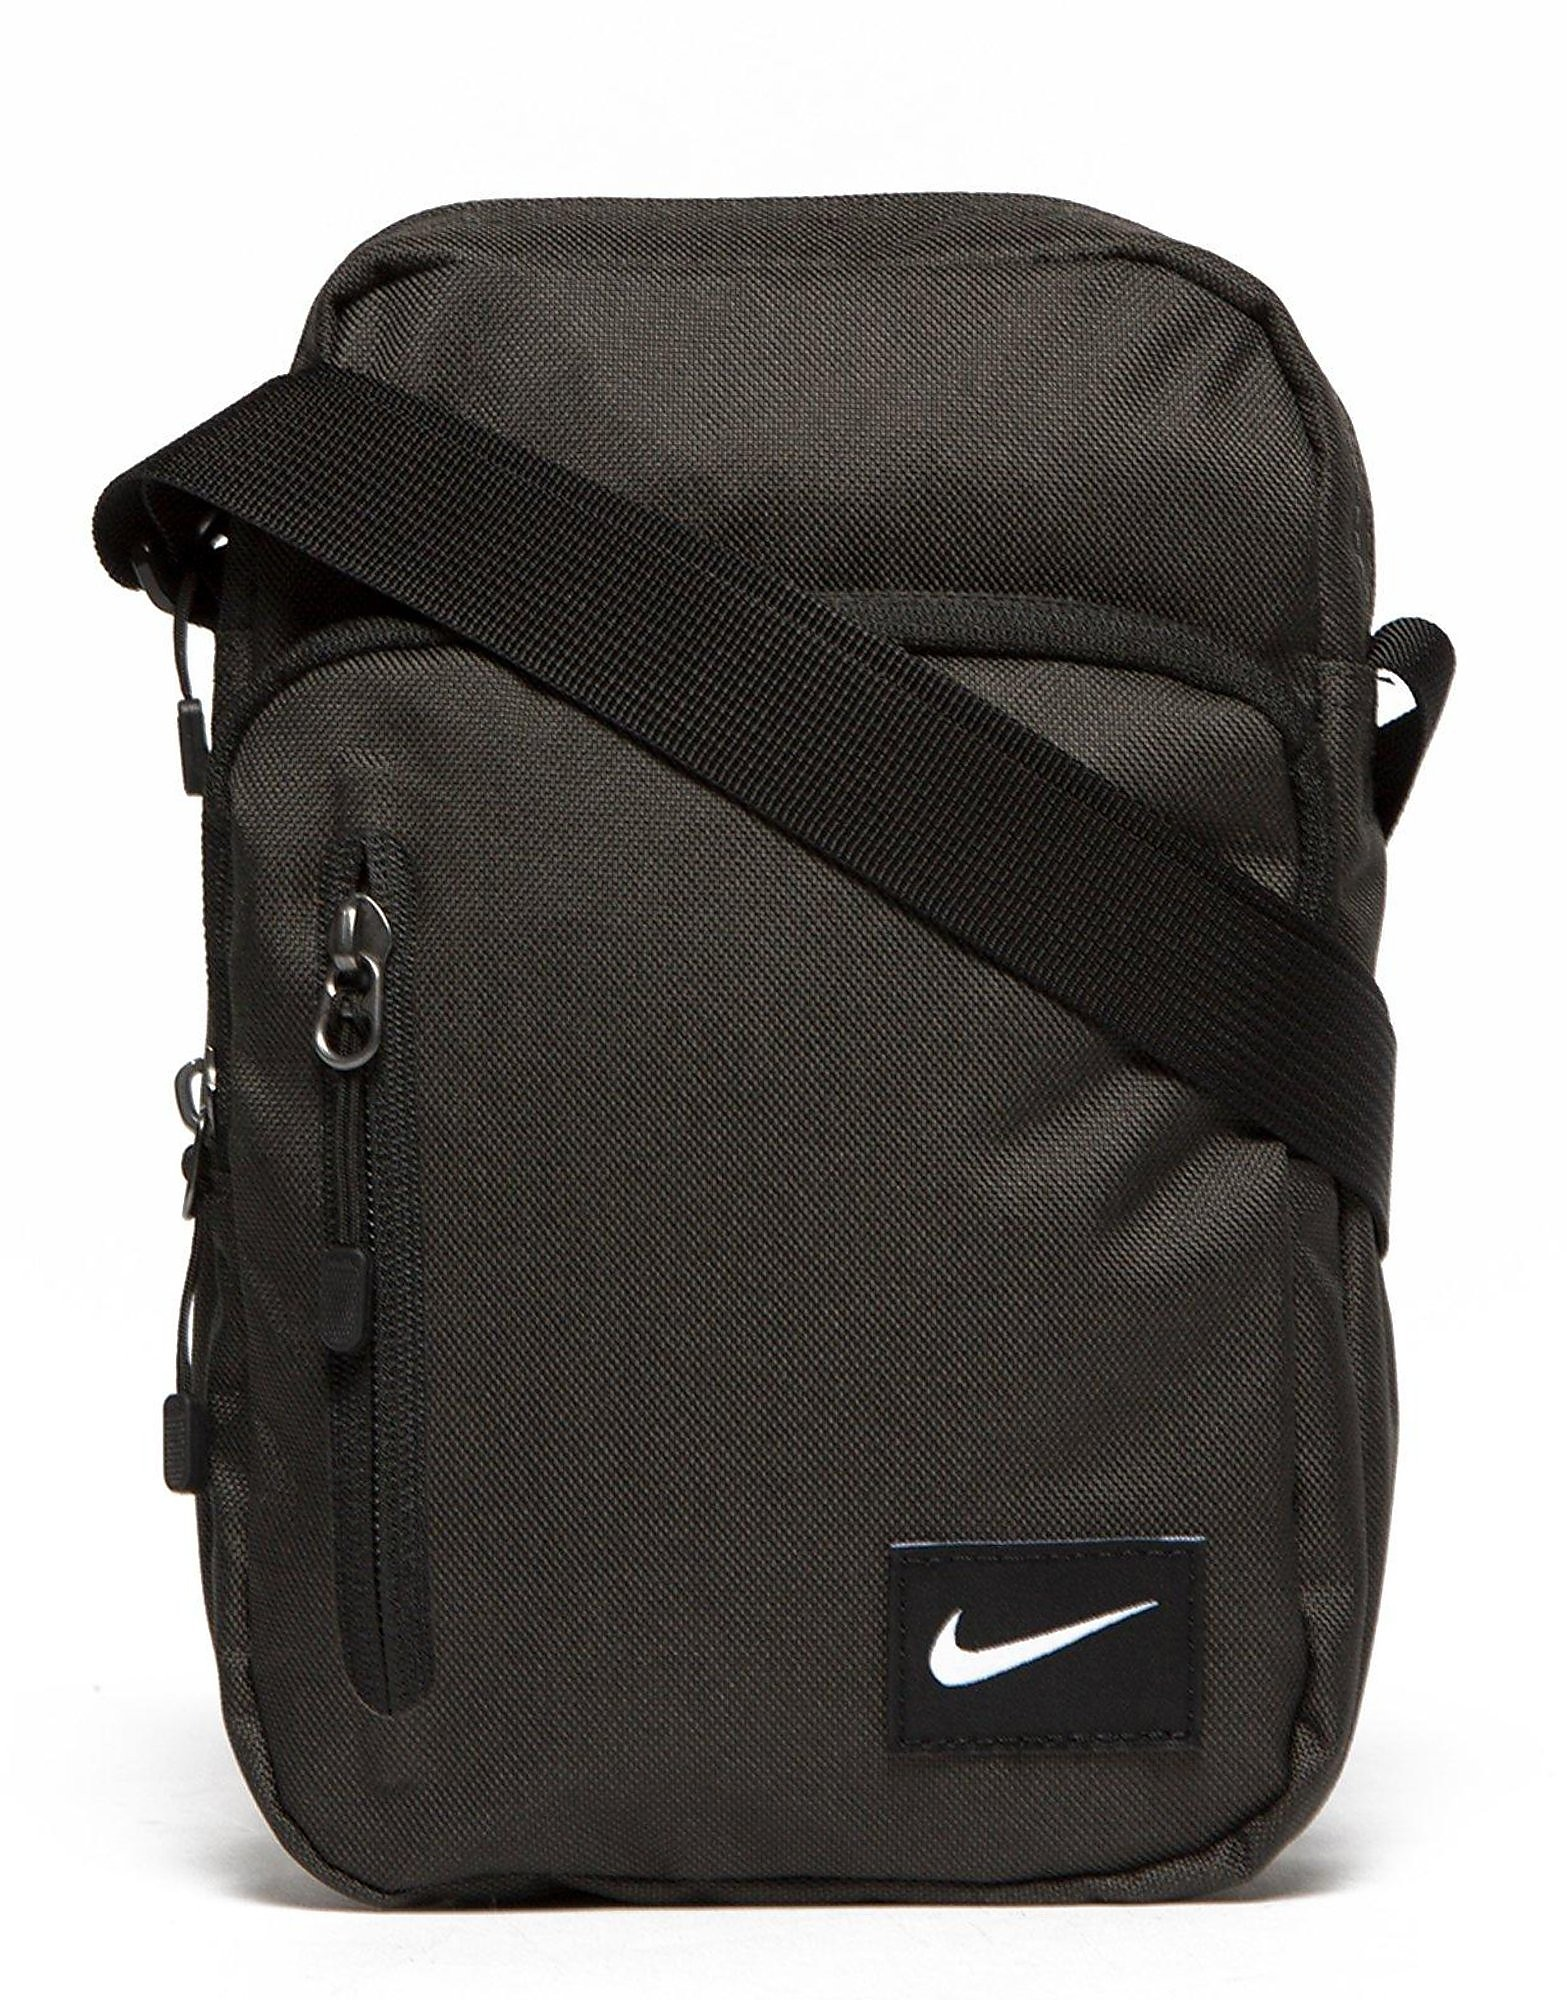 Nike Core Small Items Bag - Pewter - Mens, Pewter